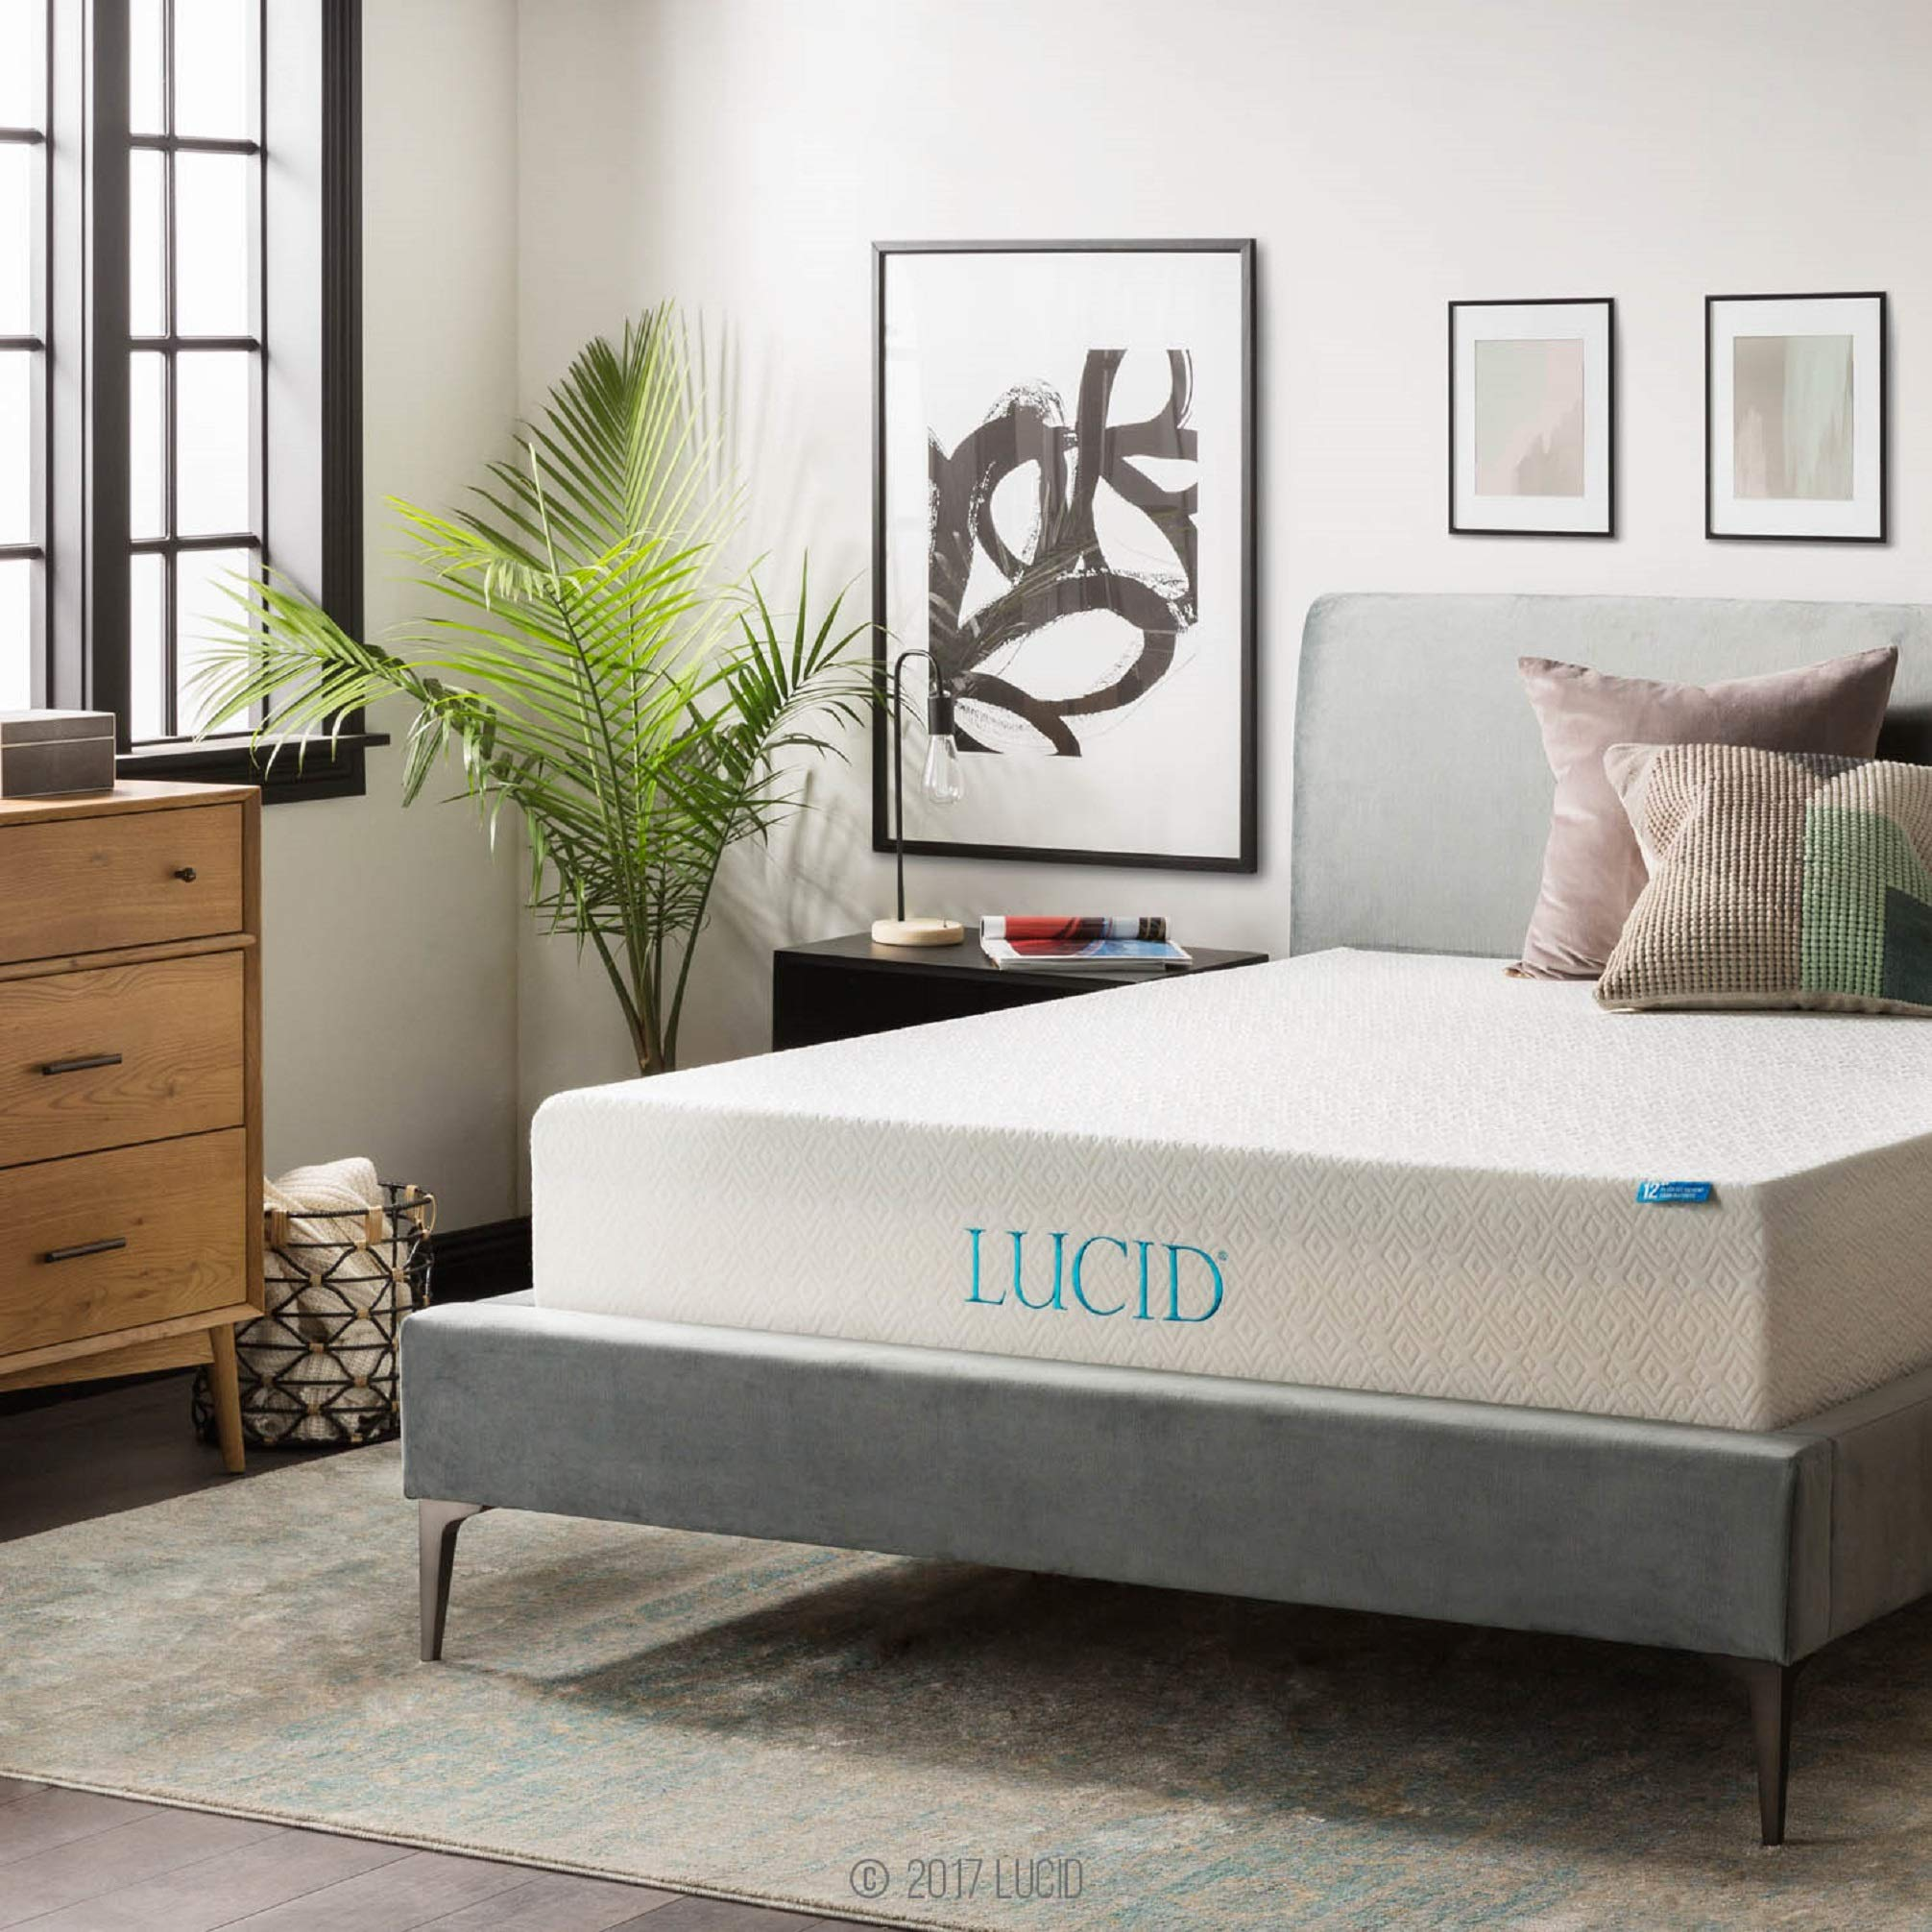 LUCID 12 Inch Gel Memory Foam Mattress - Triple-Layer - Ventilated Gel Foam - CertiPUR-US Certified - 10-Year Warranty - Queen by LUCID